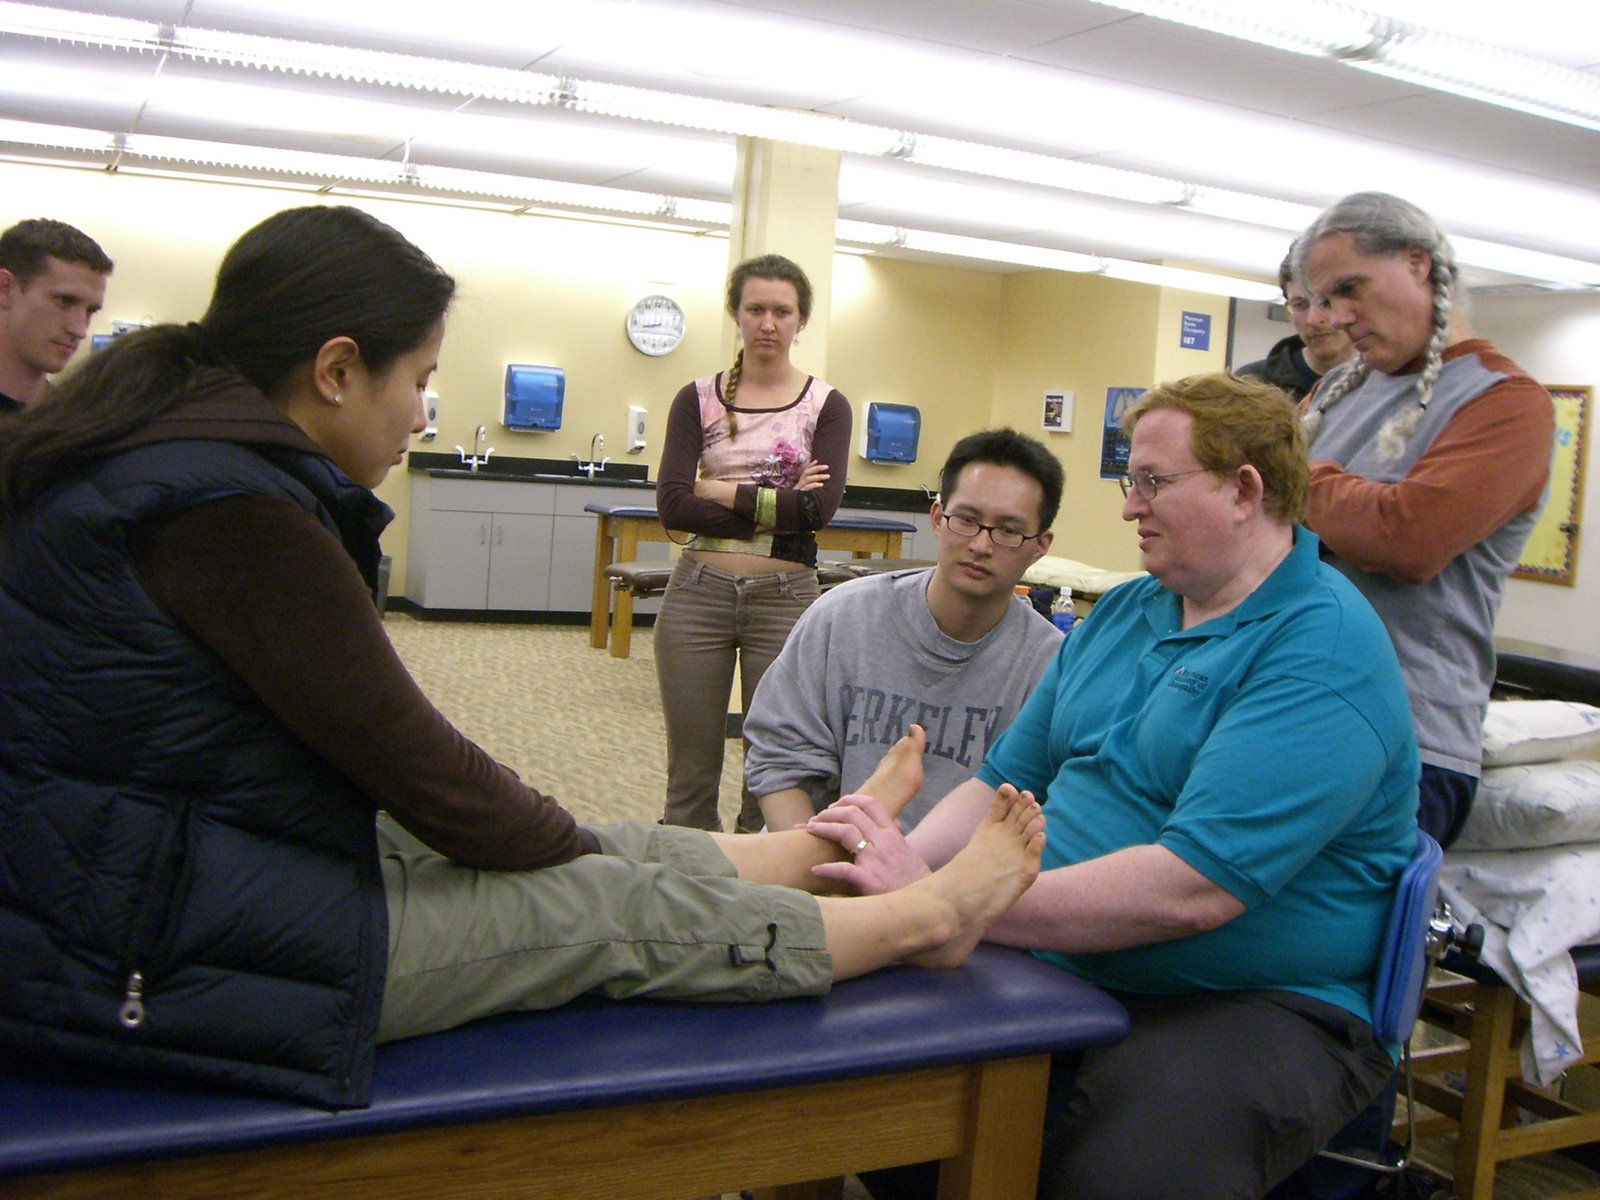 File:Osteopathic Manipulation.JPG - Wikipedia, the free encyclopedia